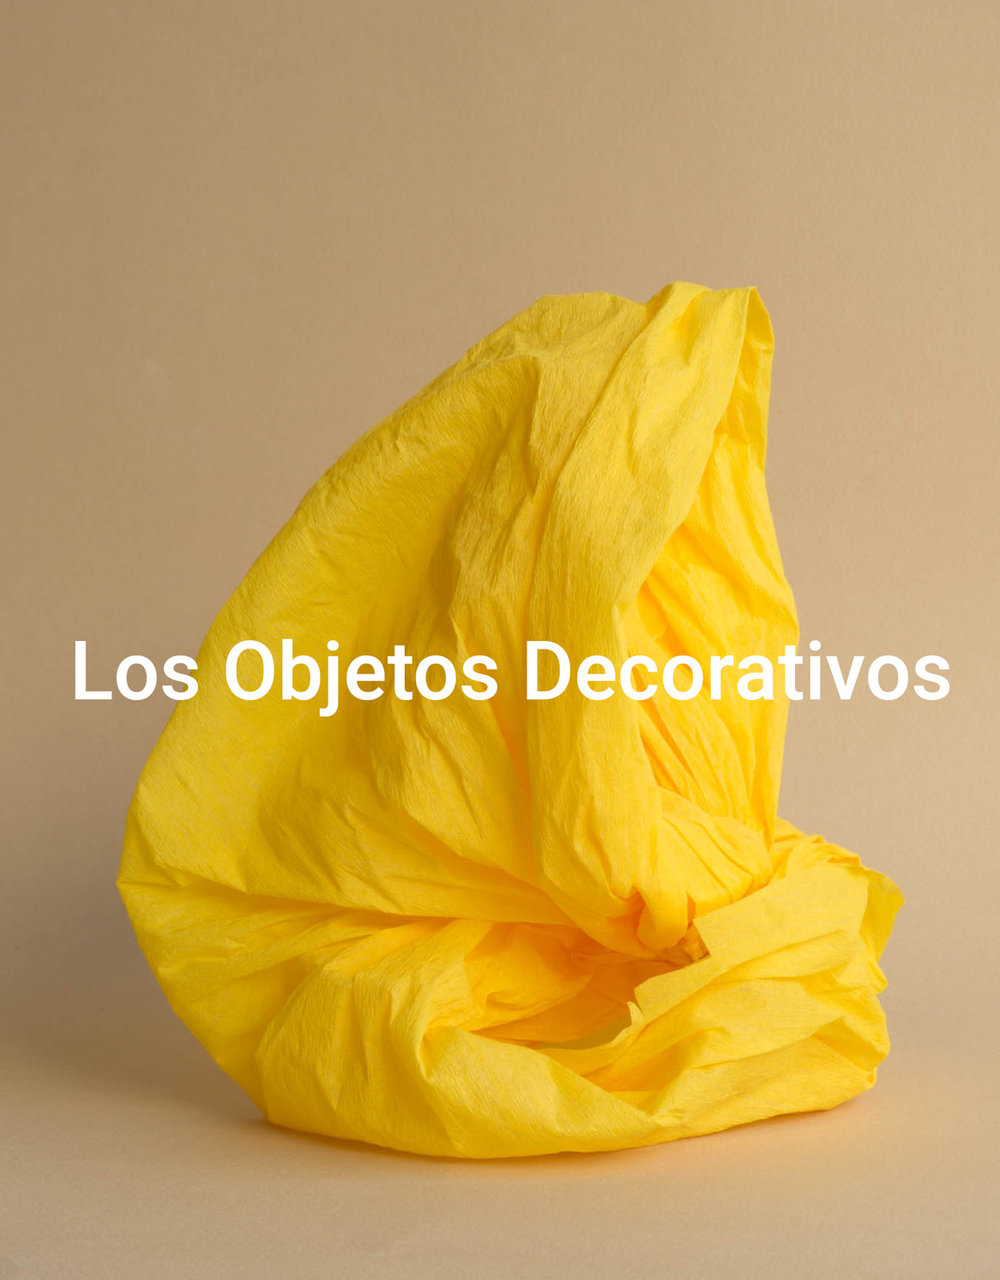 Los Objetos Decorativos - The Barcelona-based design studio by artist Rosa Rubio creates elegant, minimalist imagery through the visual exploration of handcrafted objects.